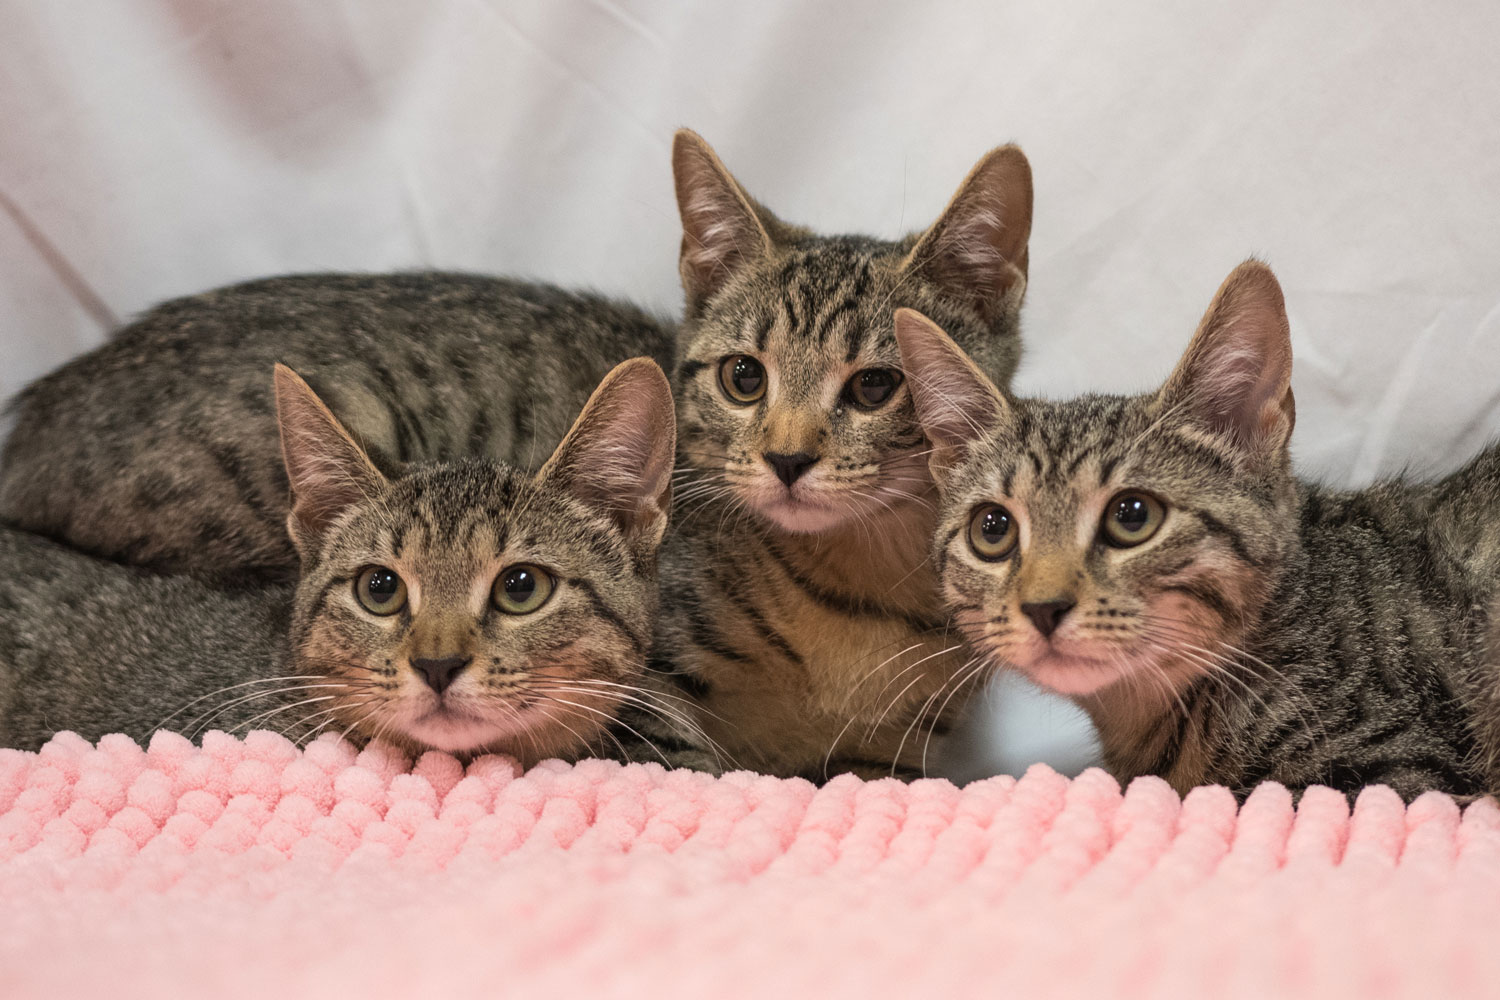 DID YOU KNOW? - One unaltered female cat and her offspring can produce 370,000 kittens in 7 years.